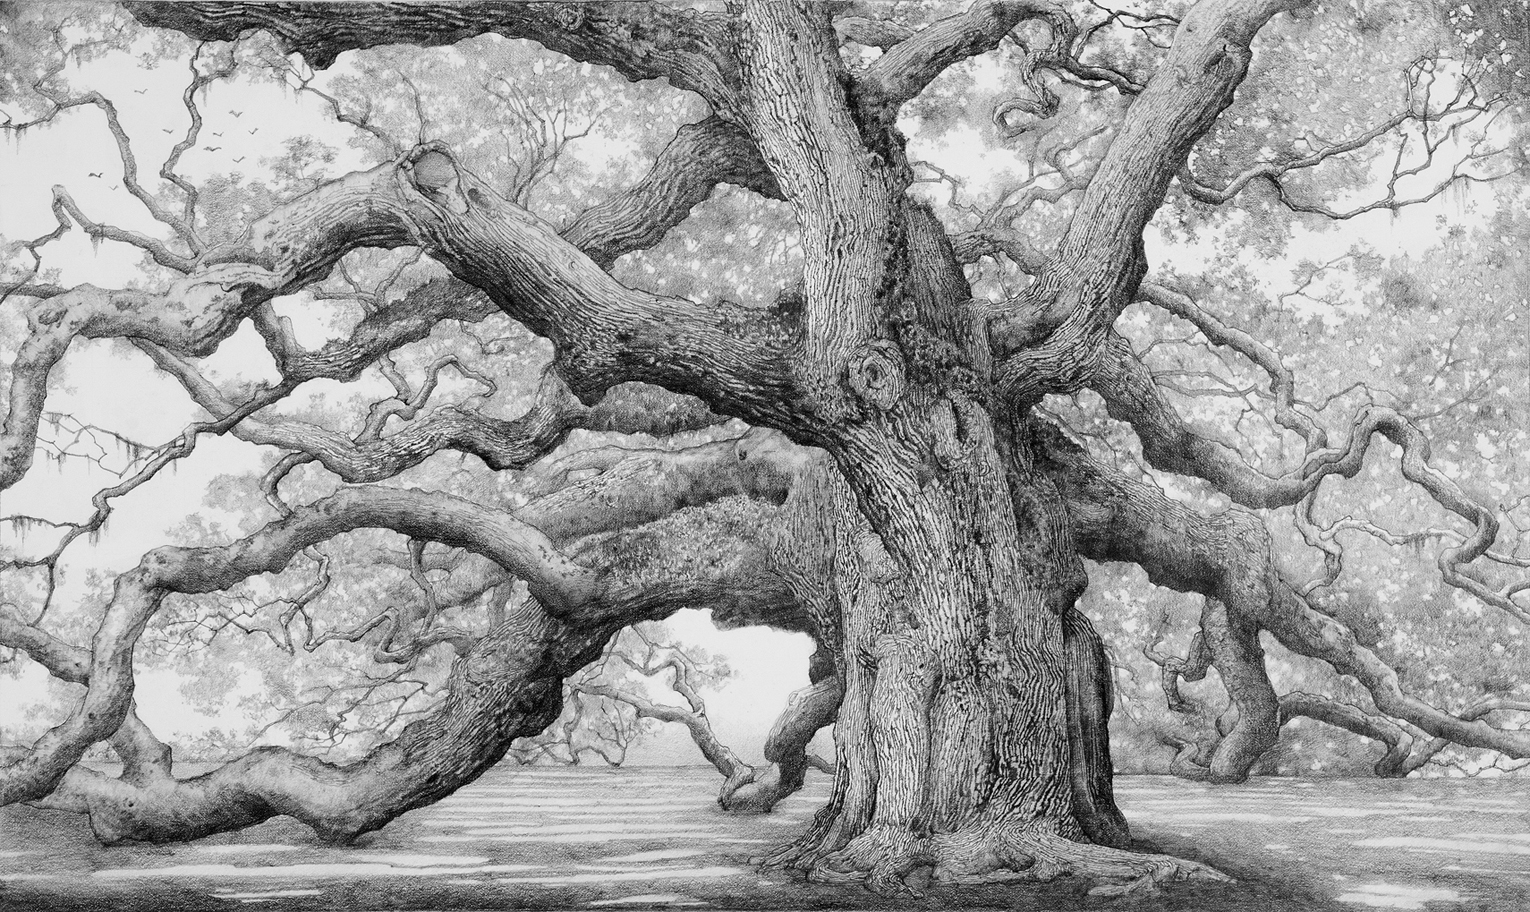 Charles Brindley, The Angel Oak / Graphite on paper / 16×26 inches / 2010